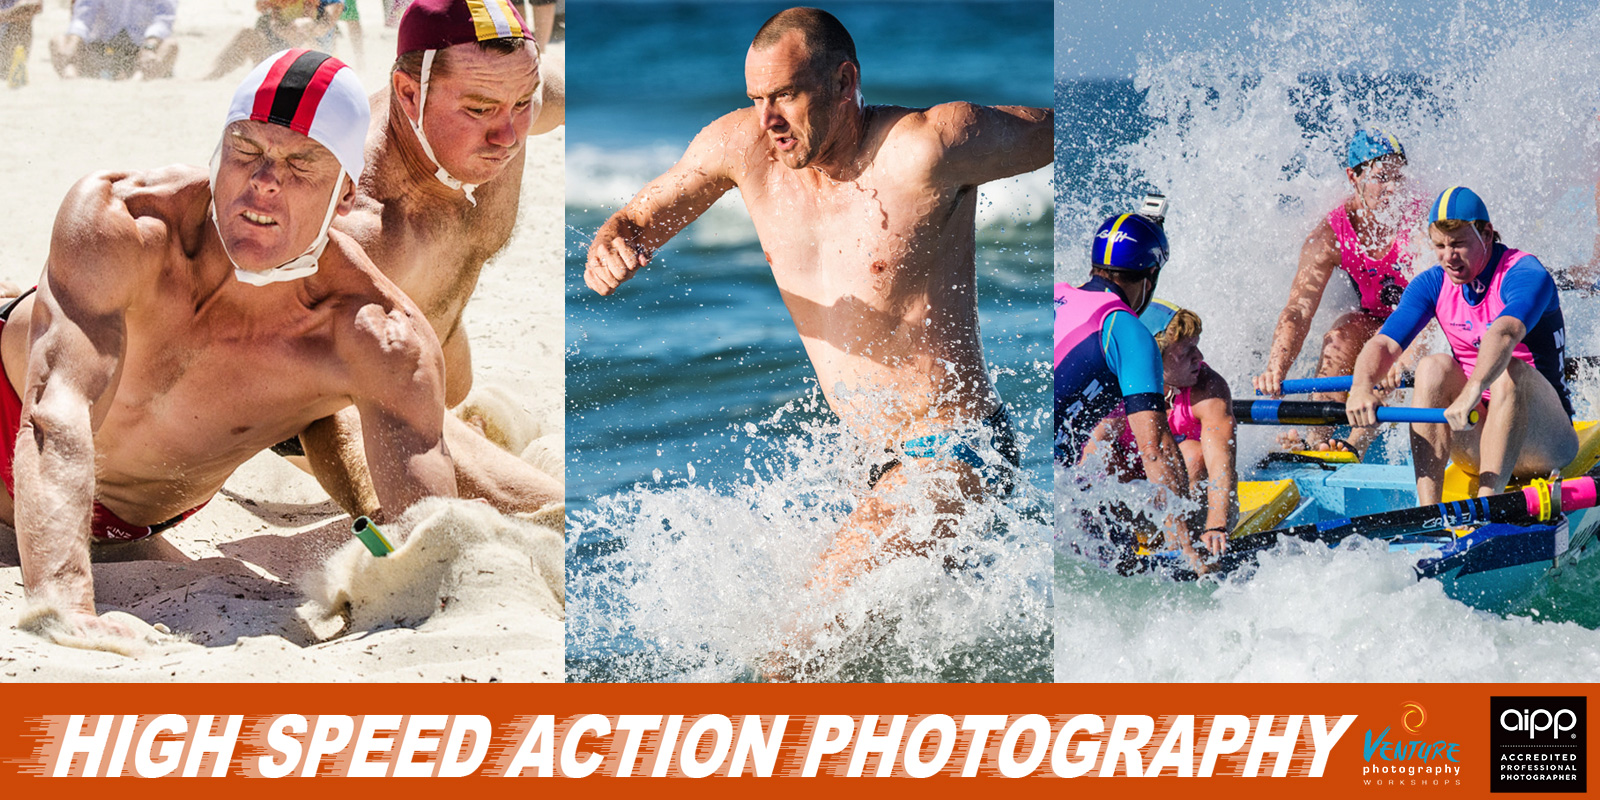 High Speed Action Photography